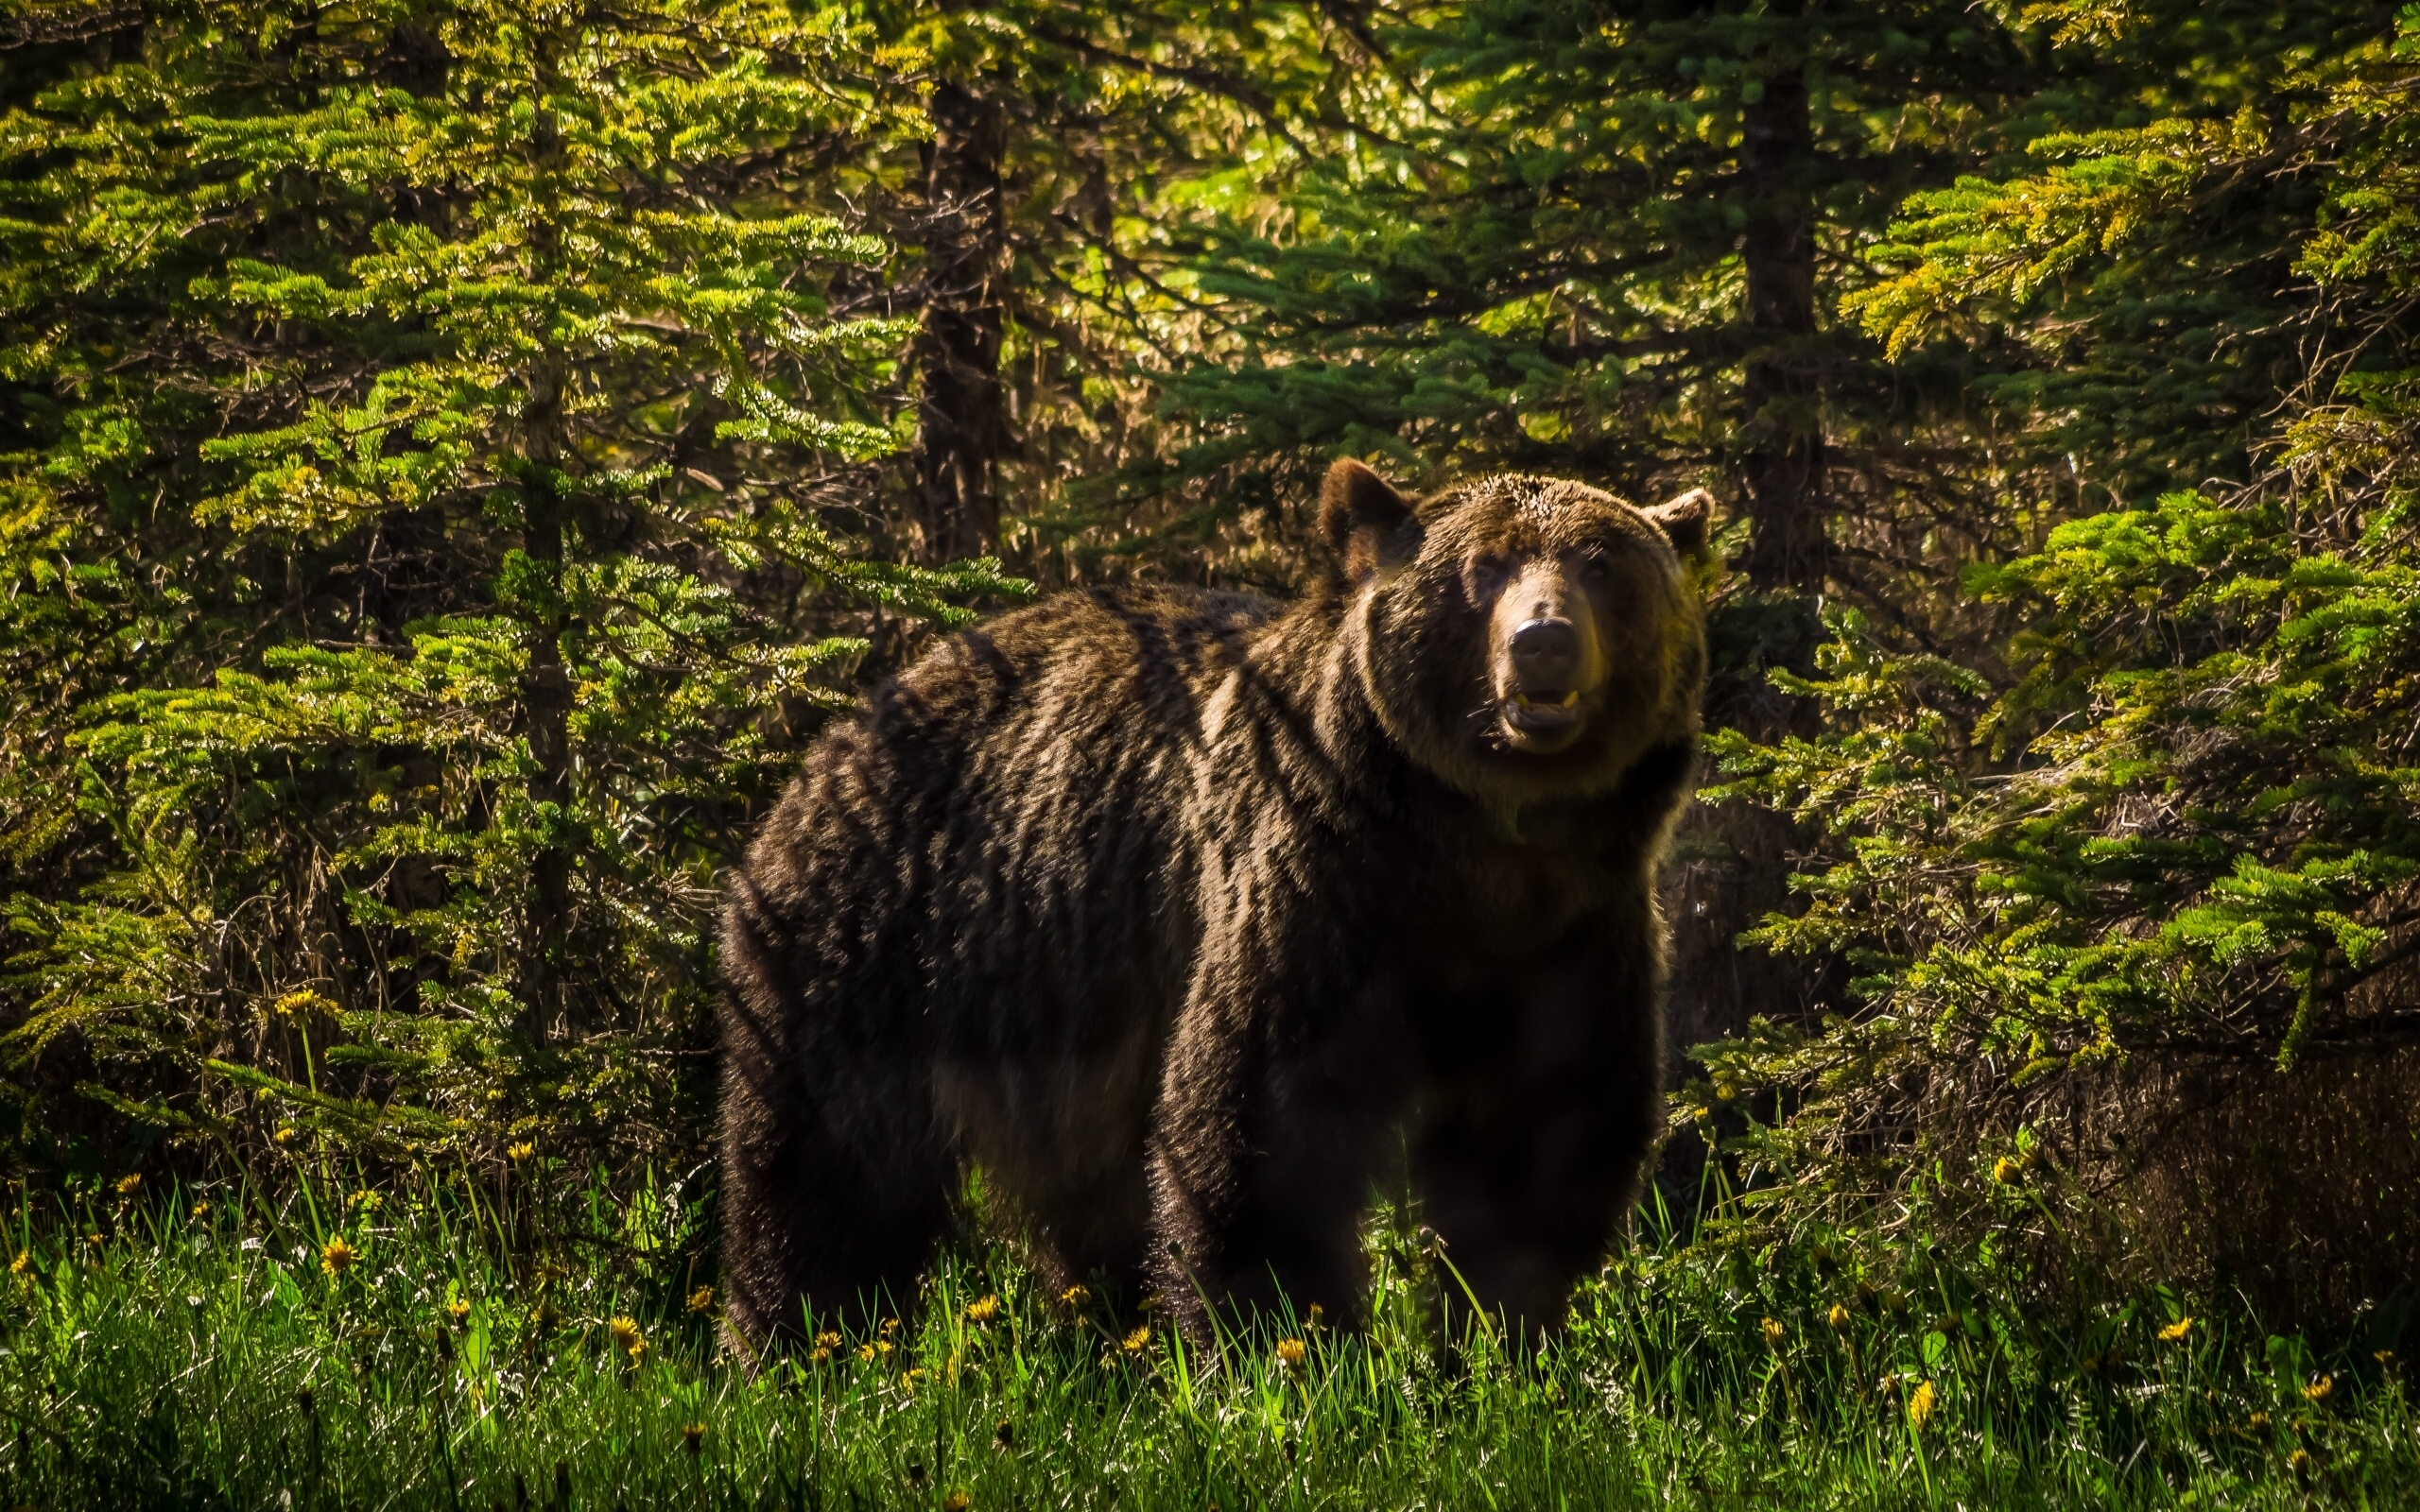 Thomas Wall Mural Grizzly Bear Forest Wallpaper 2560x1600 125286